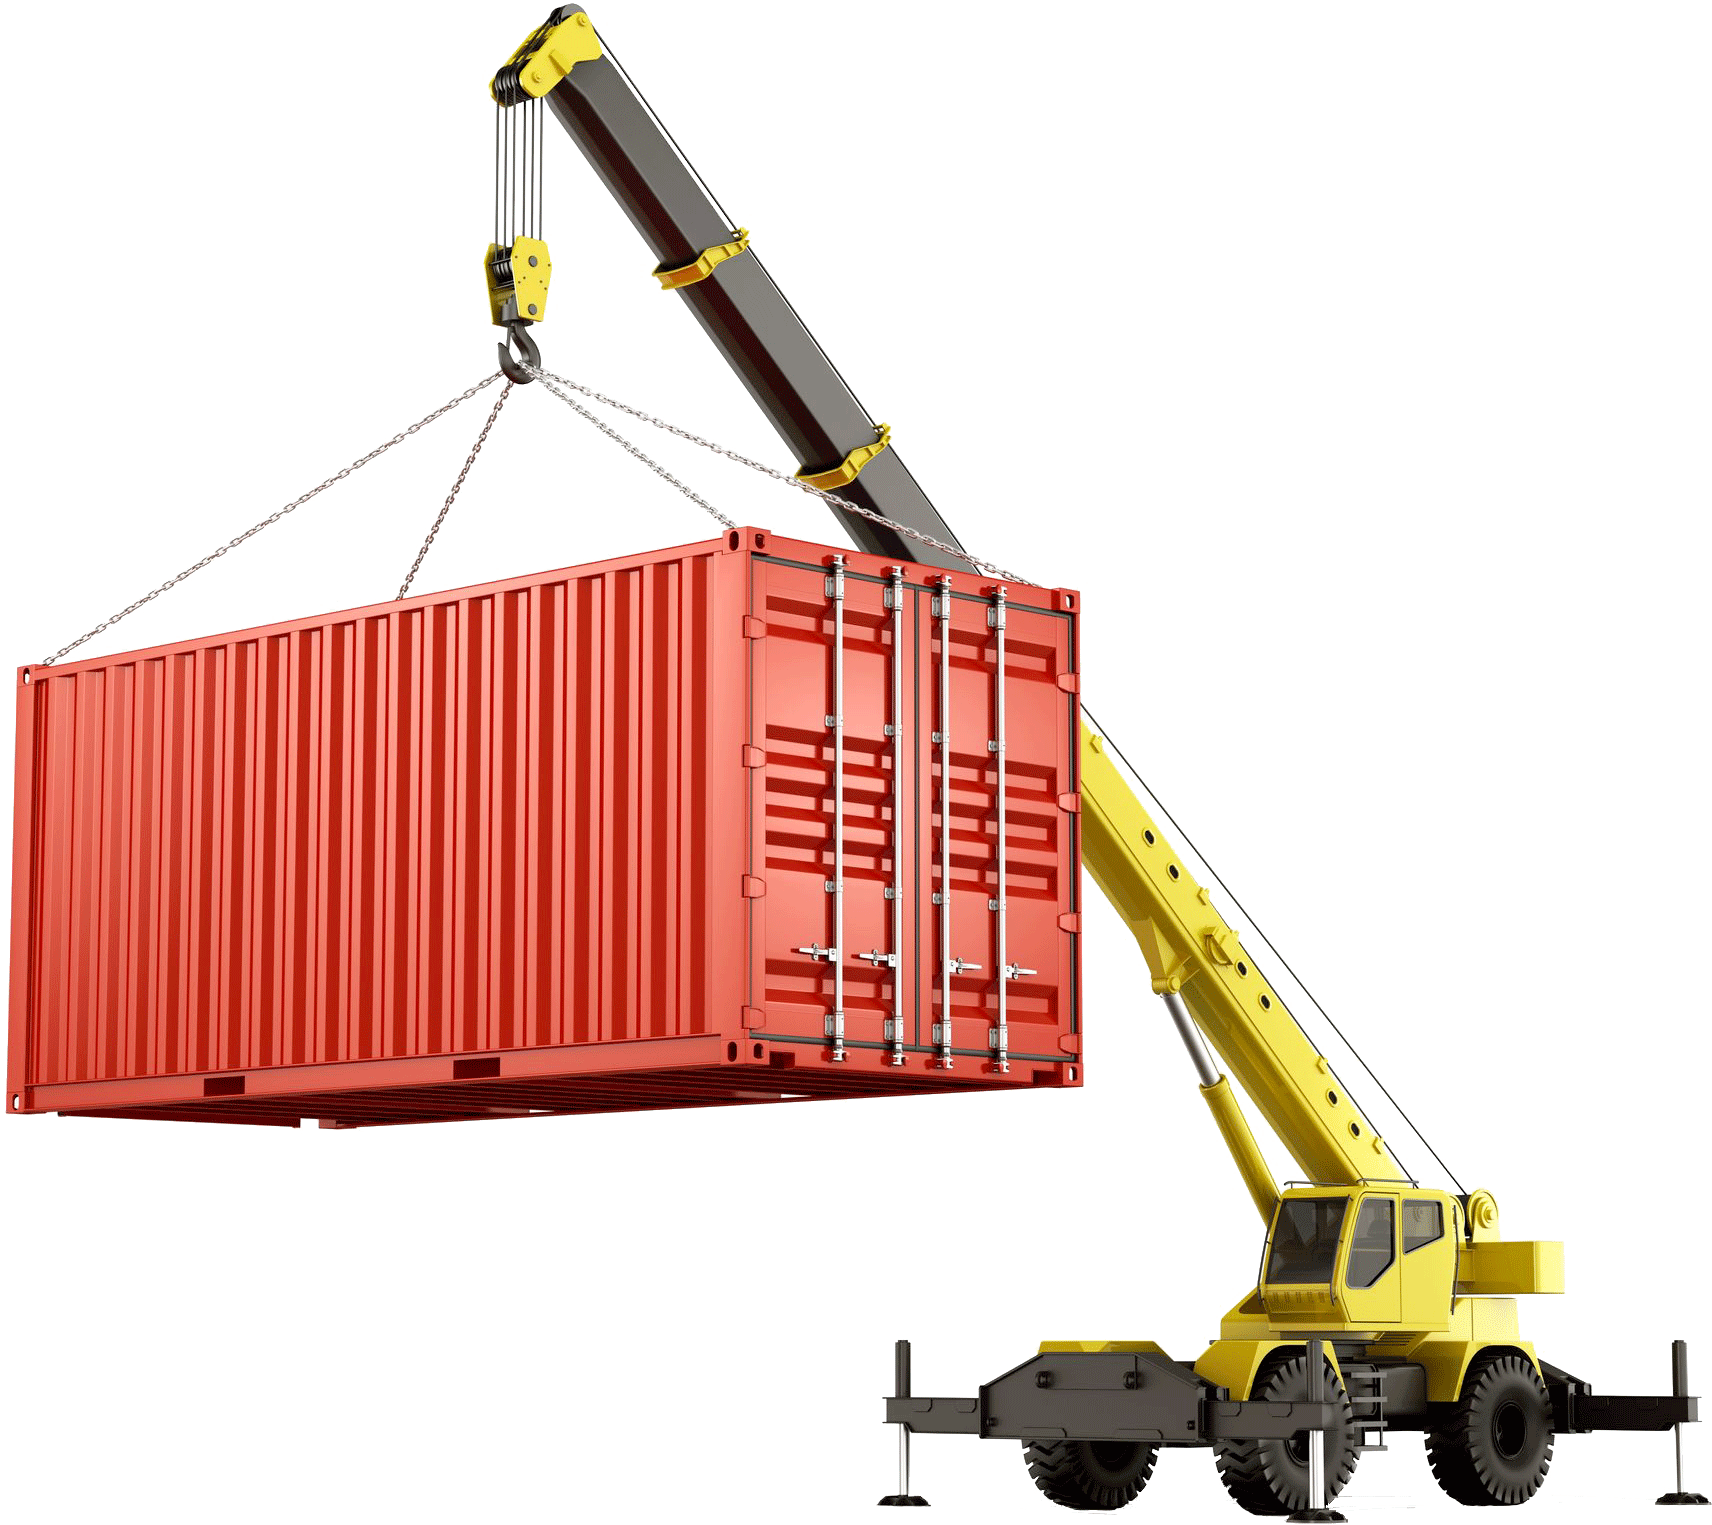 https://www.lstransport.fr/wp-content/uploads/2016/02/container3-1.png